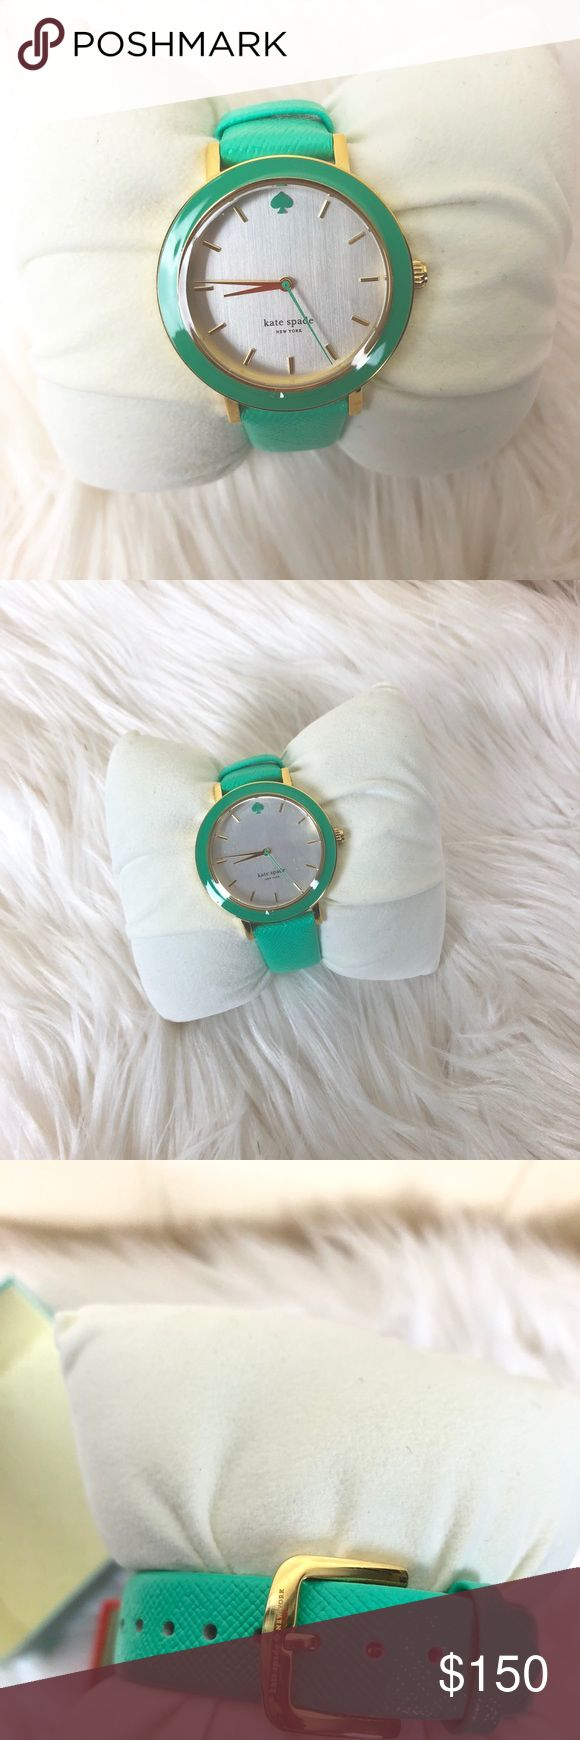 Kate Spade Women's Green and Gold Watch New in Box Brand new, plastic is still on watch face. Beautiful pistachio green color. kate spade Accessories Watches